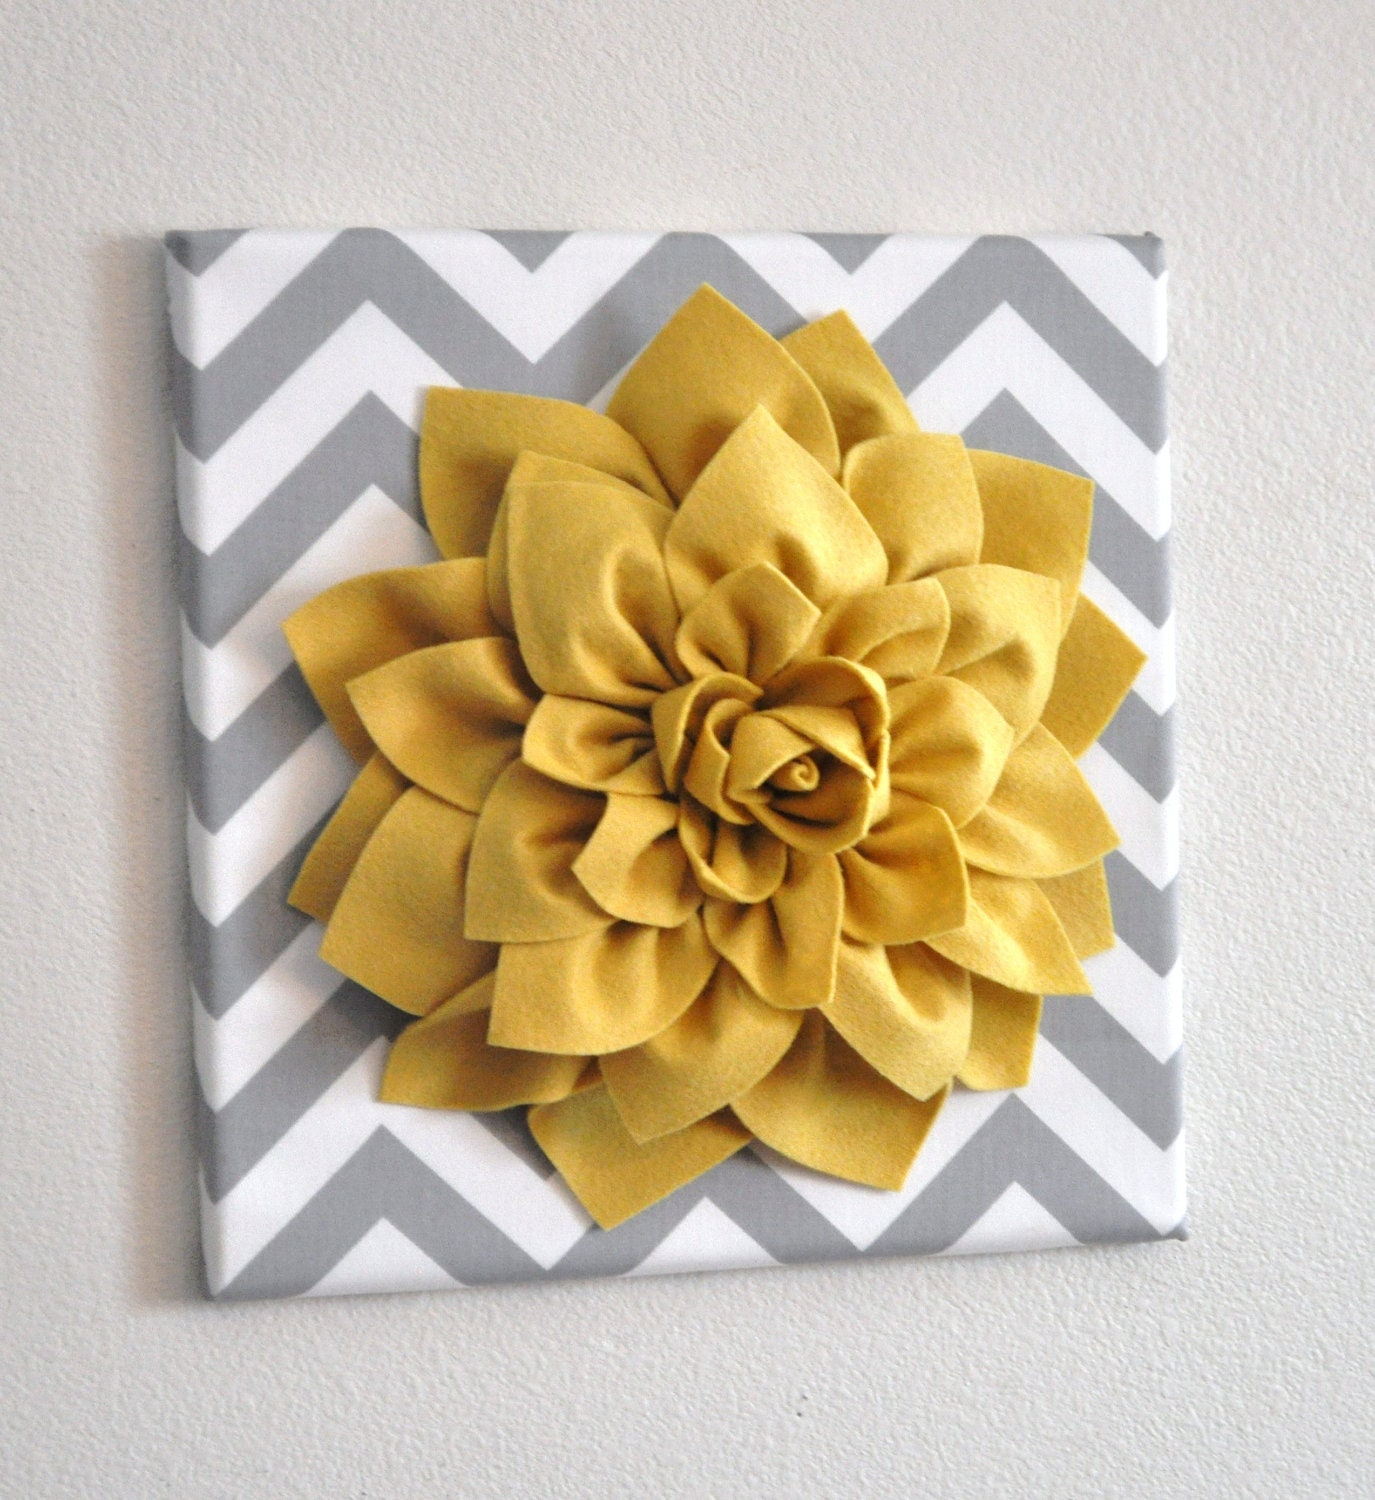 3d Flower Wall Art - purplebirdblog.com -